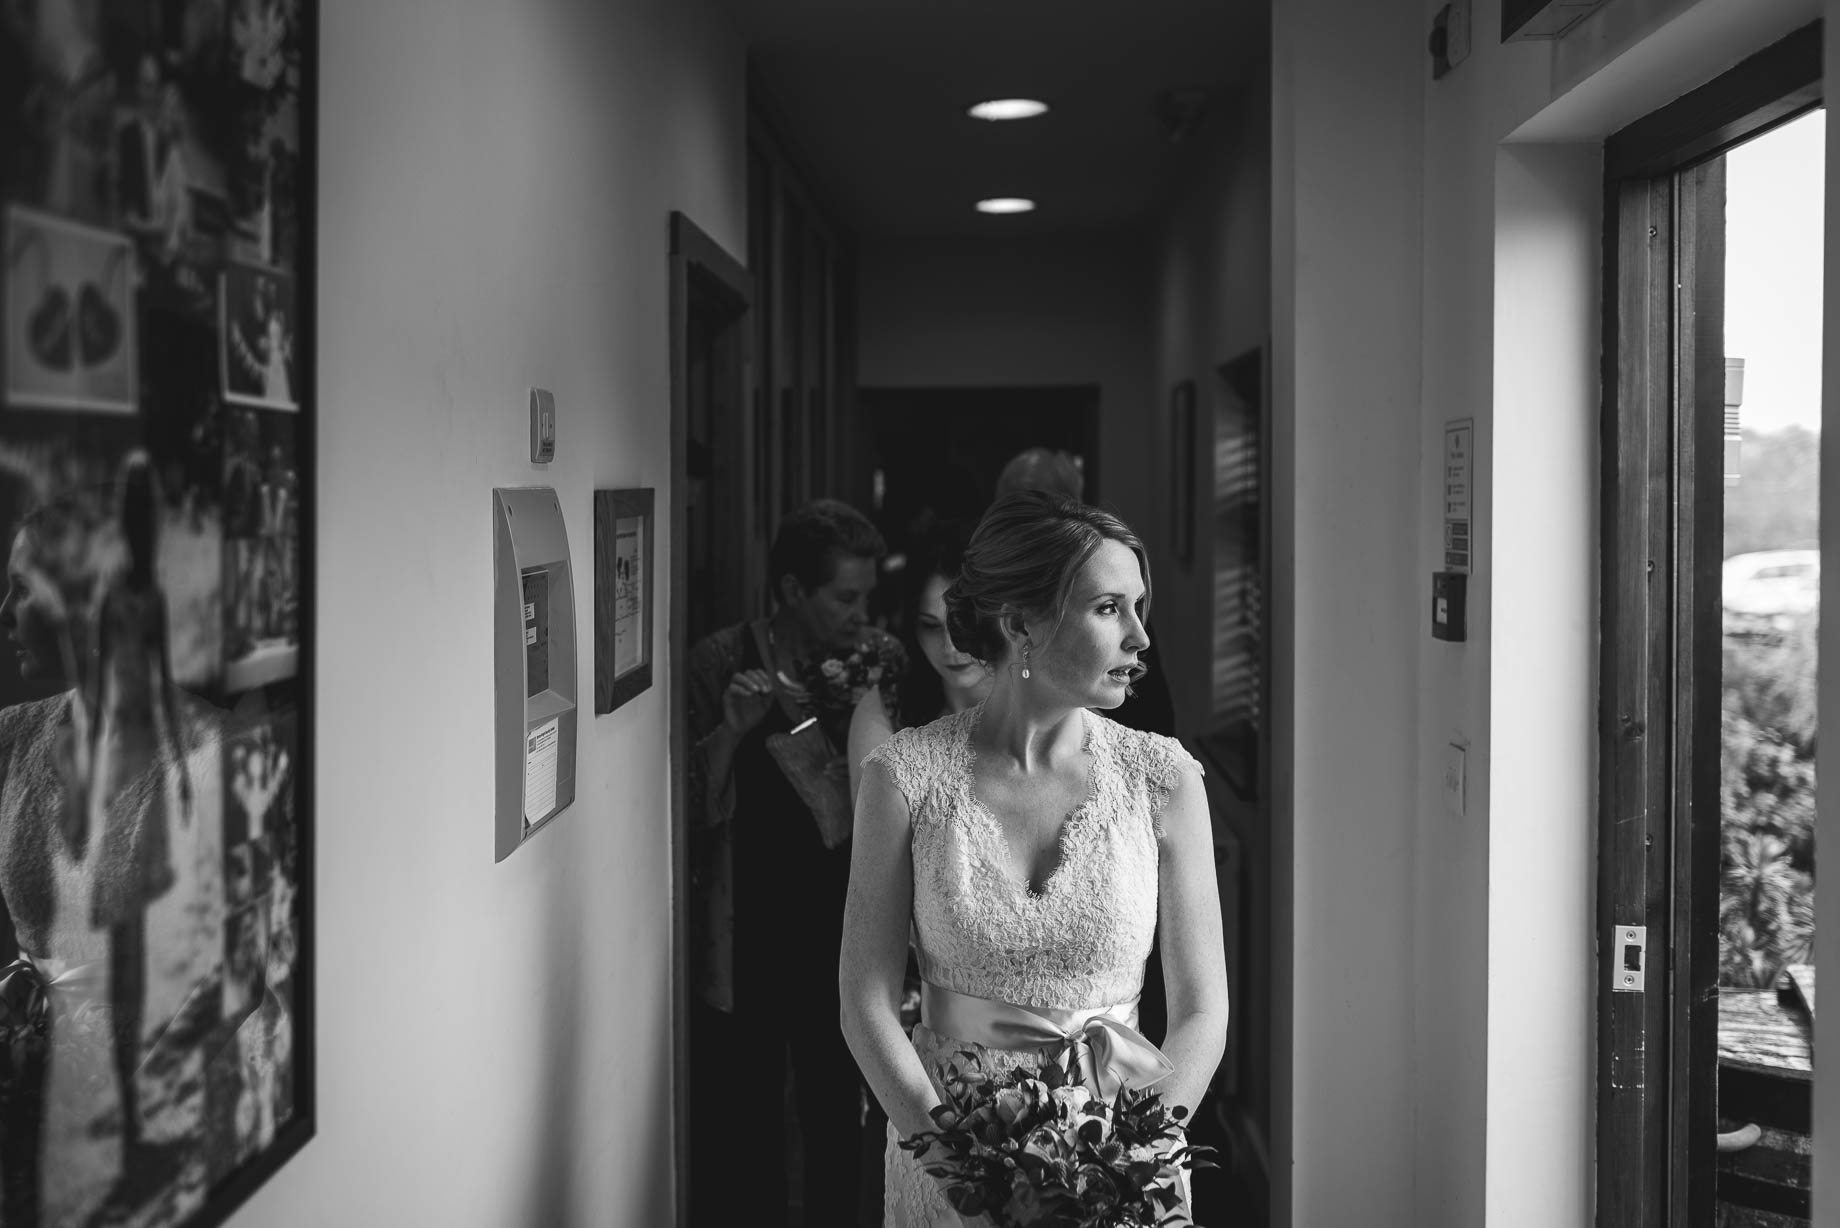 Surrey Wedding Photography by Guy Collier - Becca and James (29 of 145)